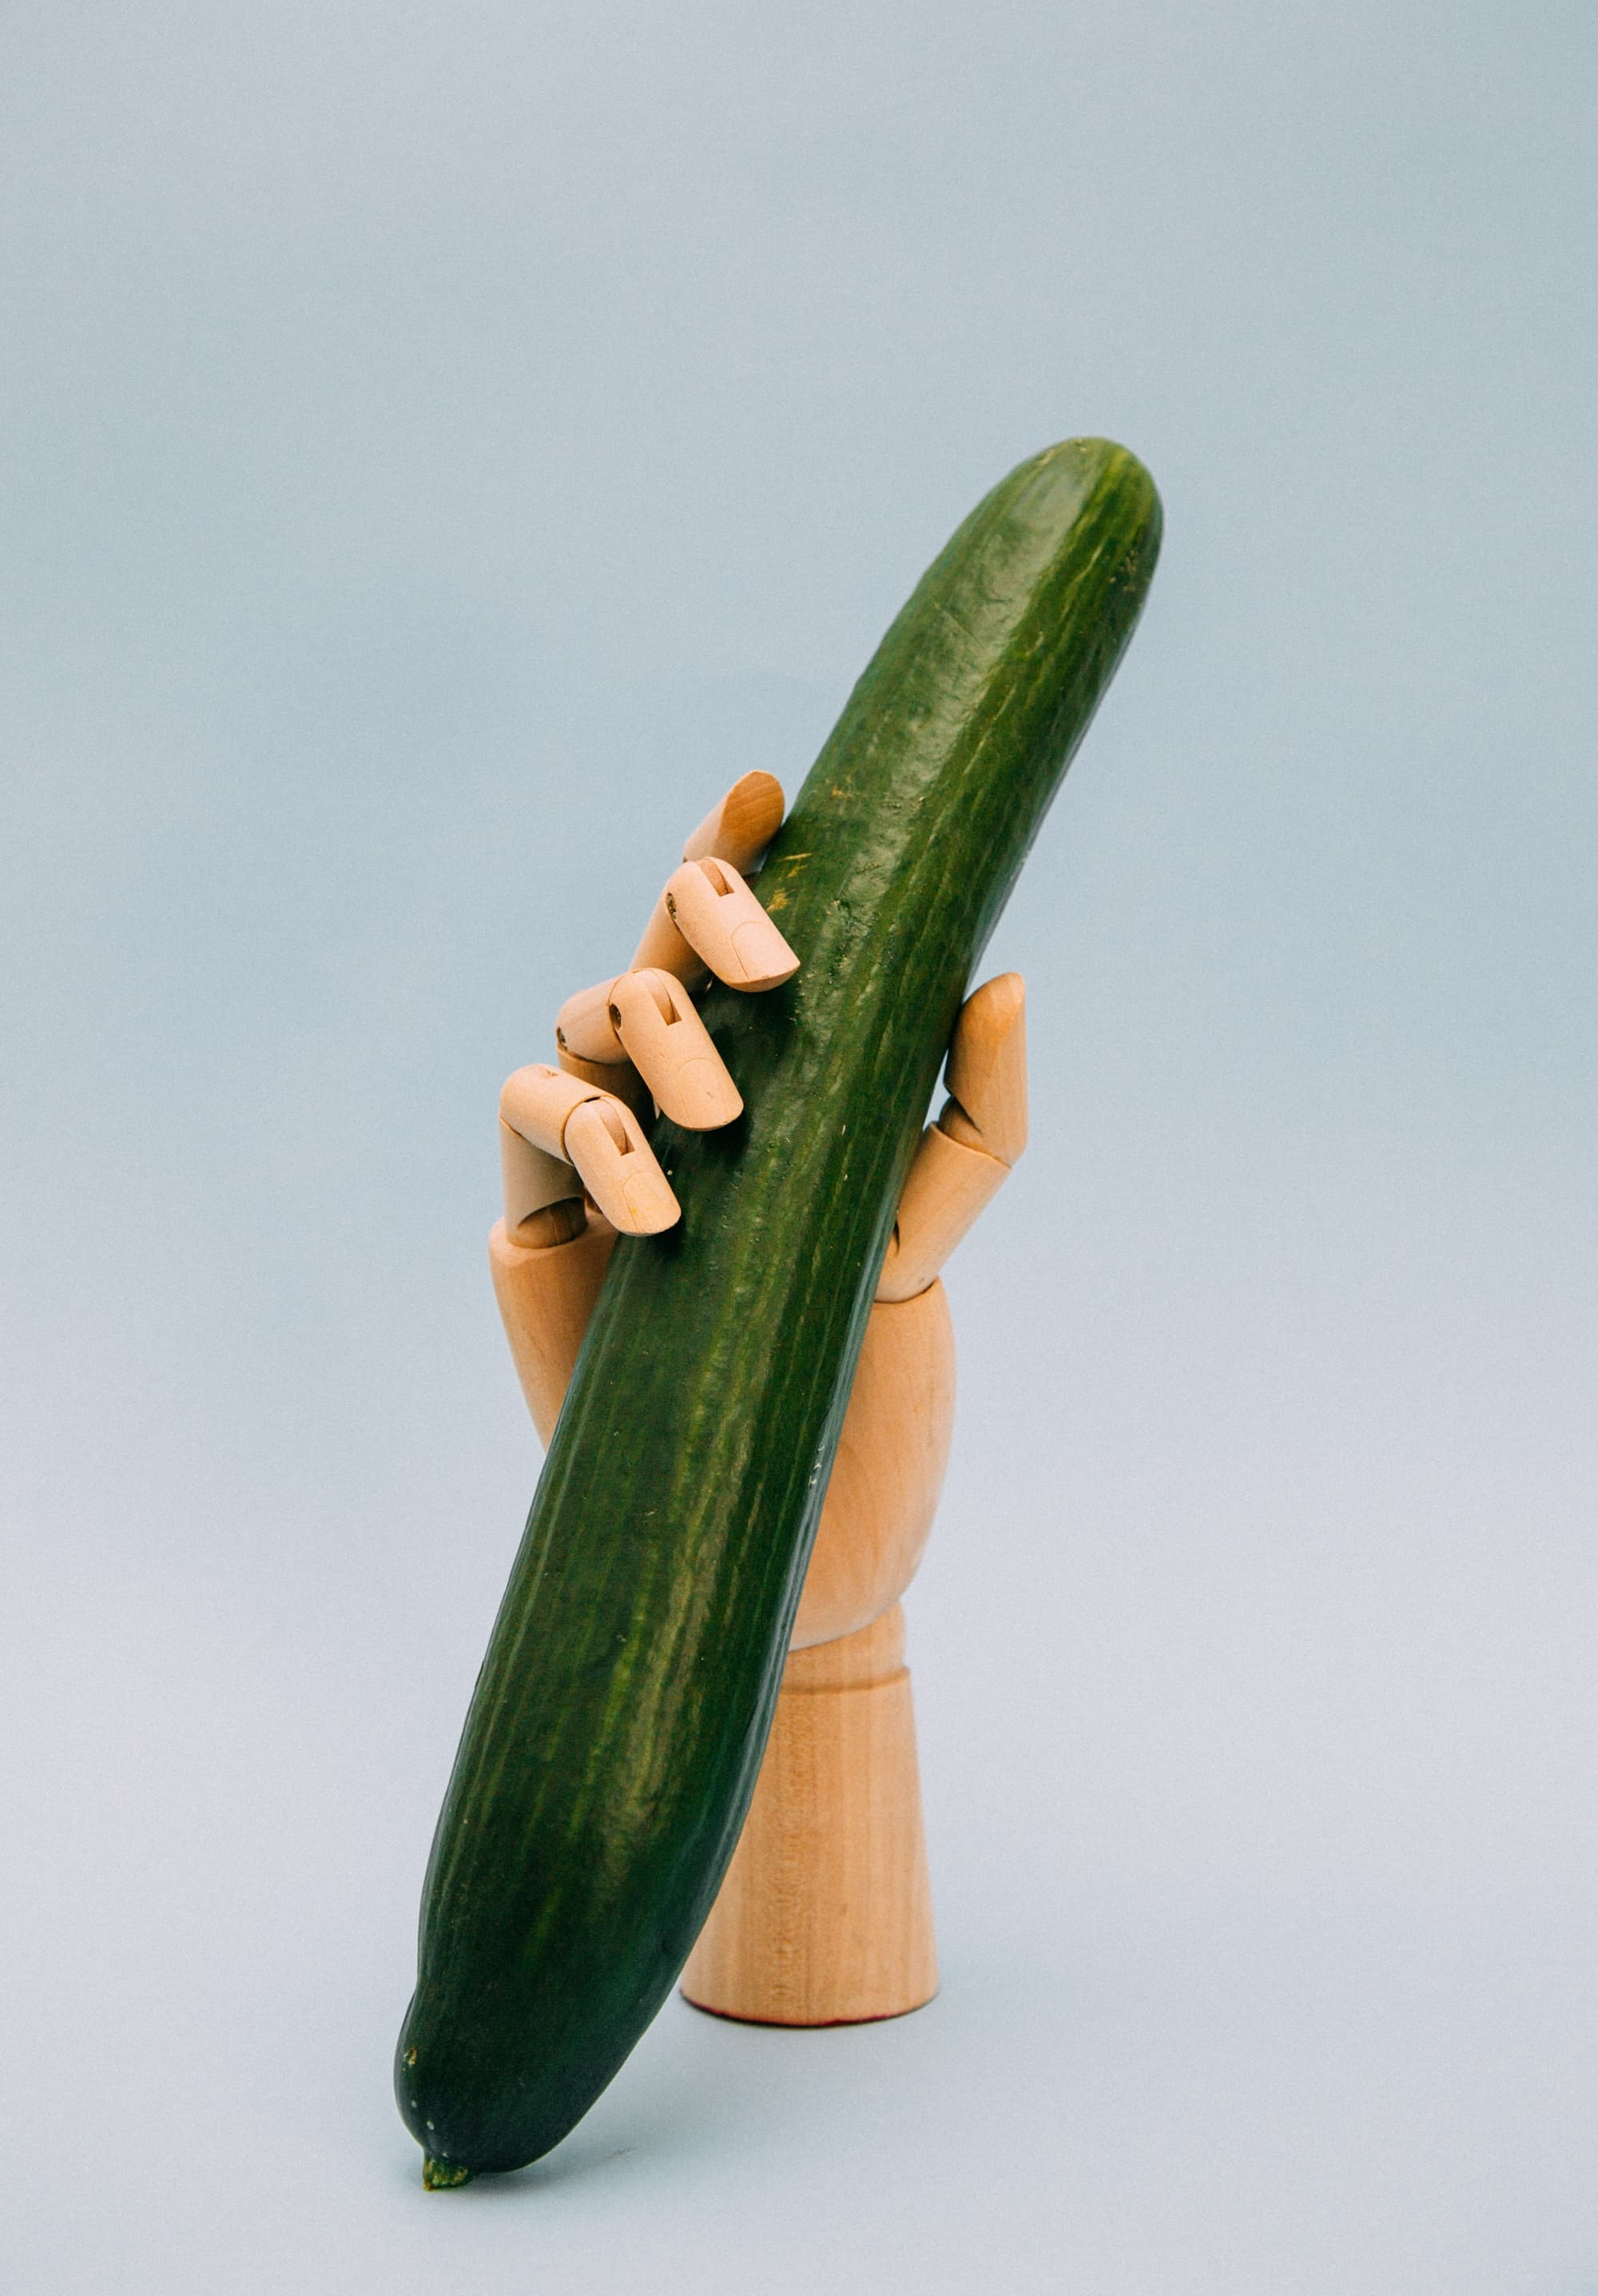 How Long Can the Average Man Stay Erect? - Top 5 Penis